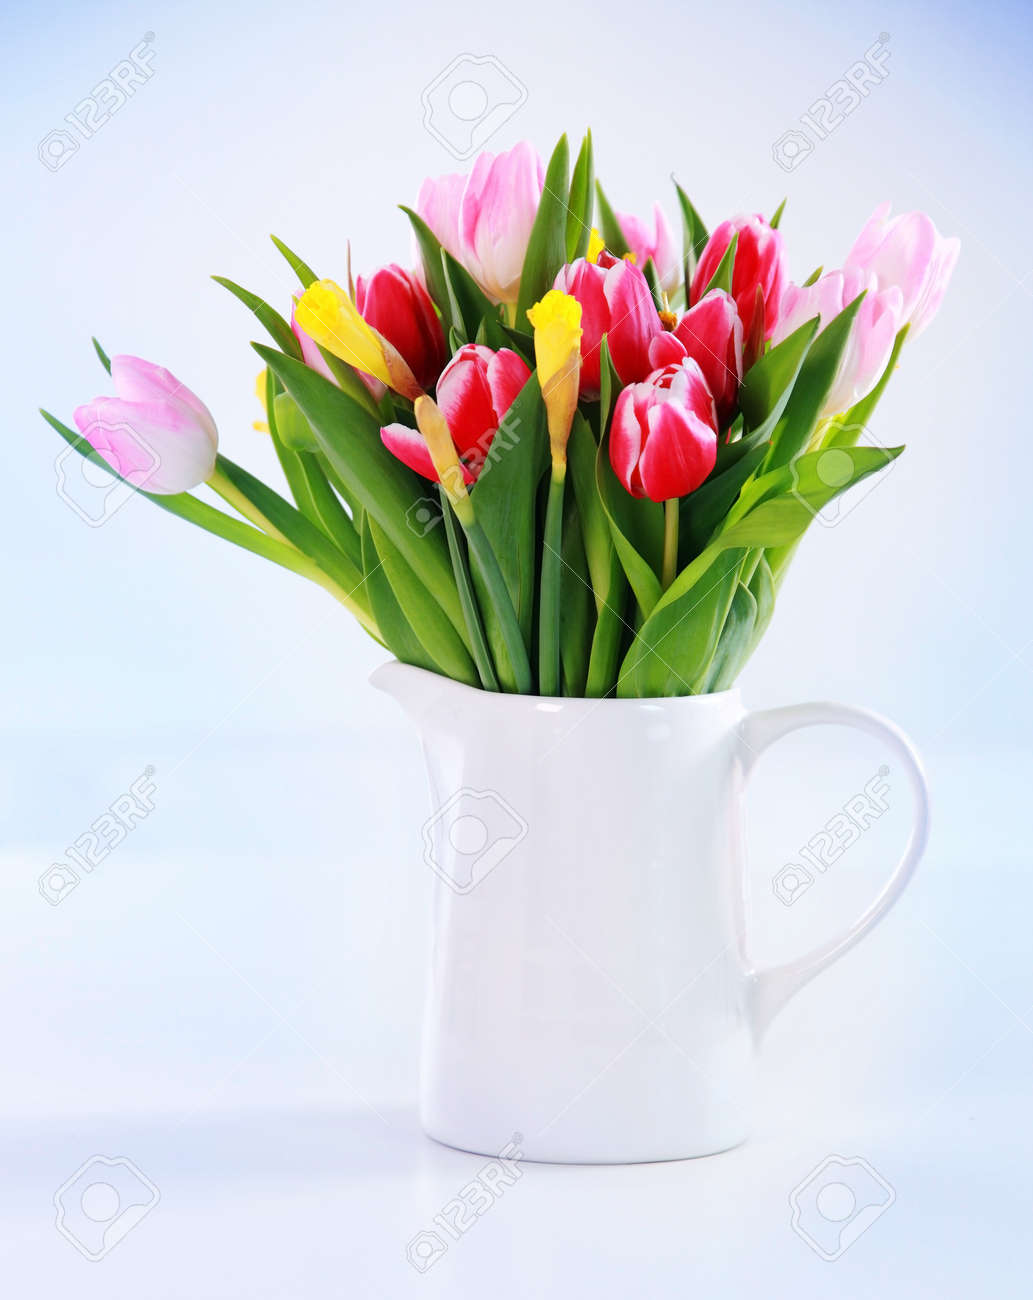 Home appliance - beautiful spring flowers in vase on the table Stock Photo - 12659232